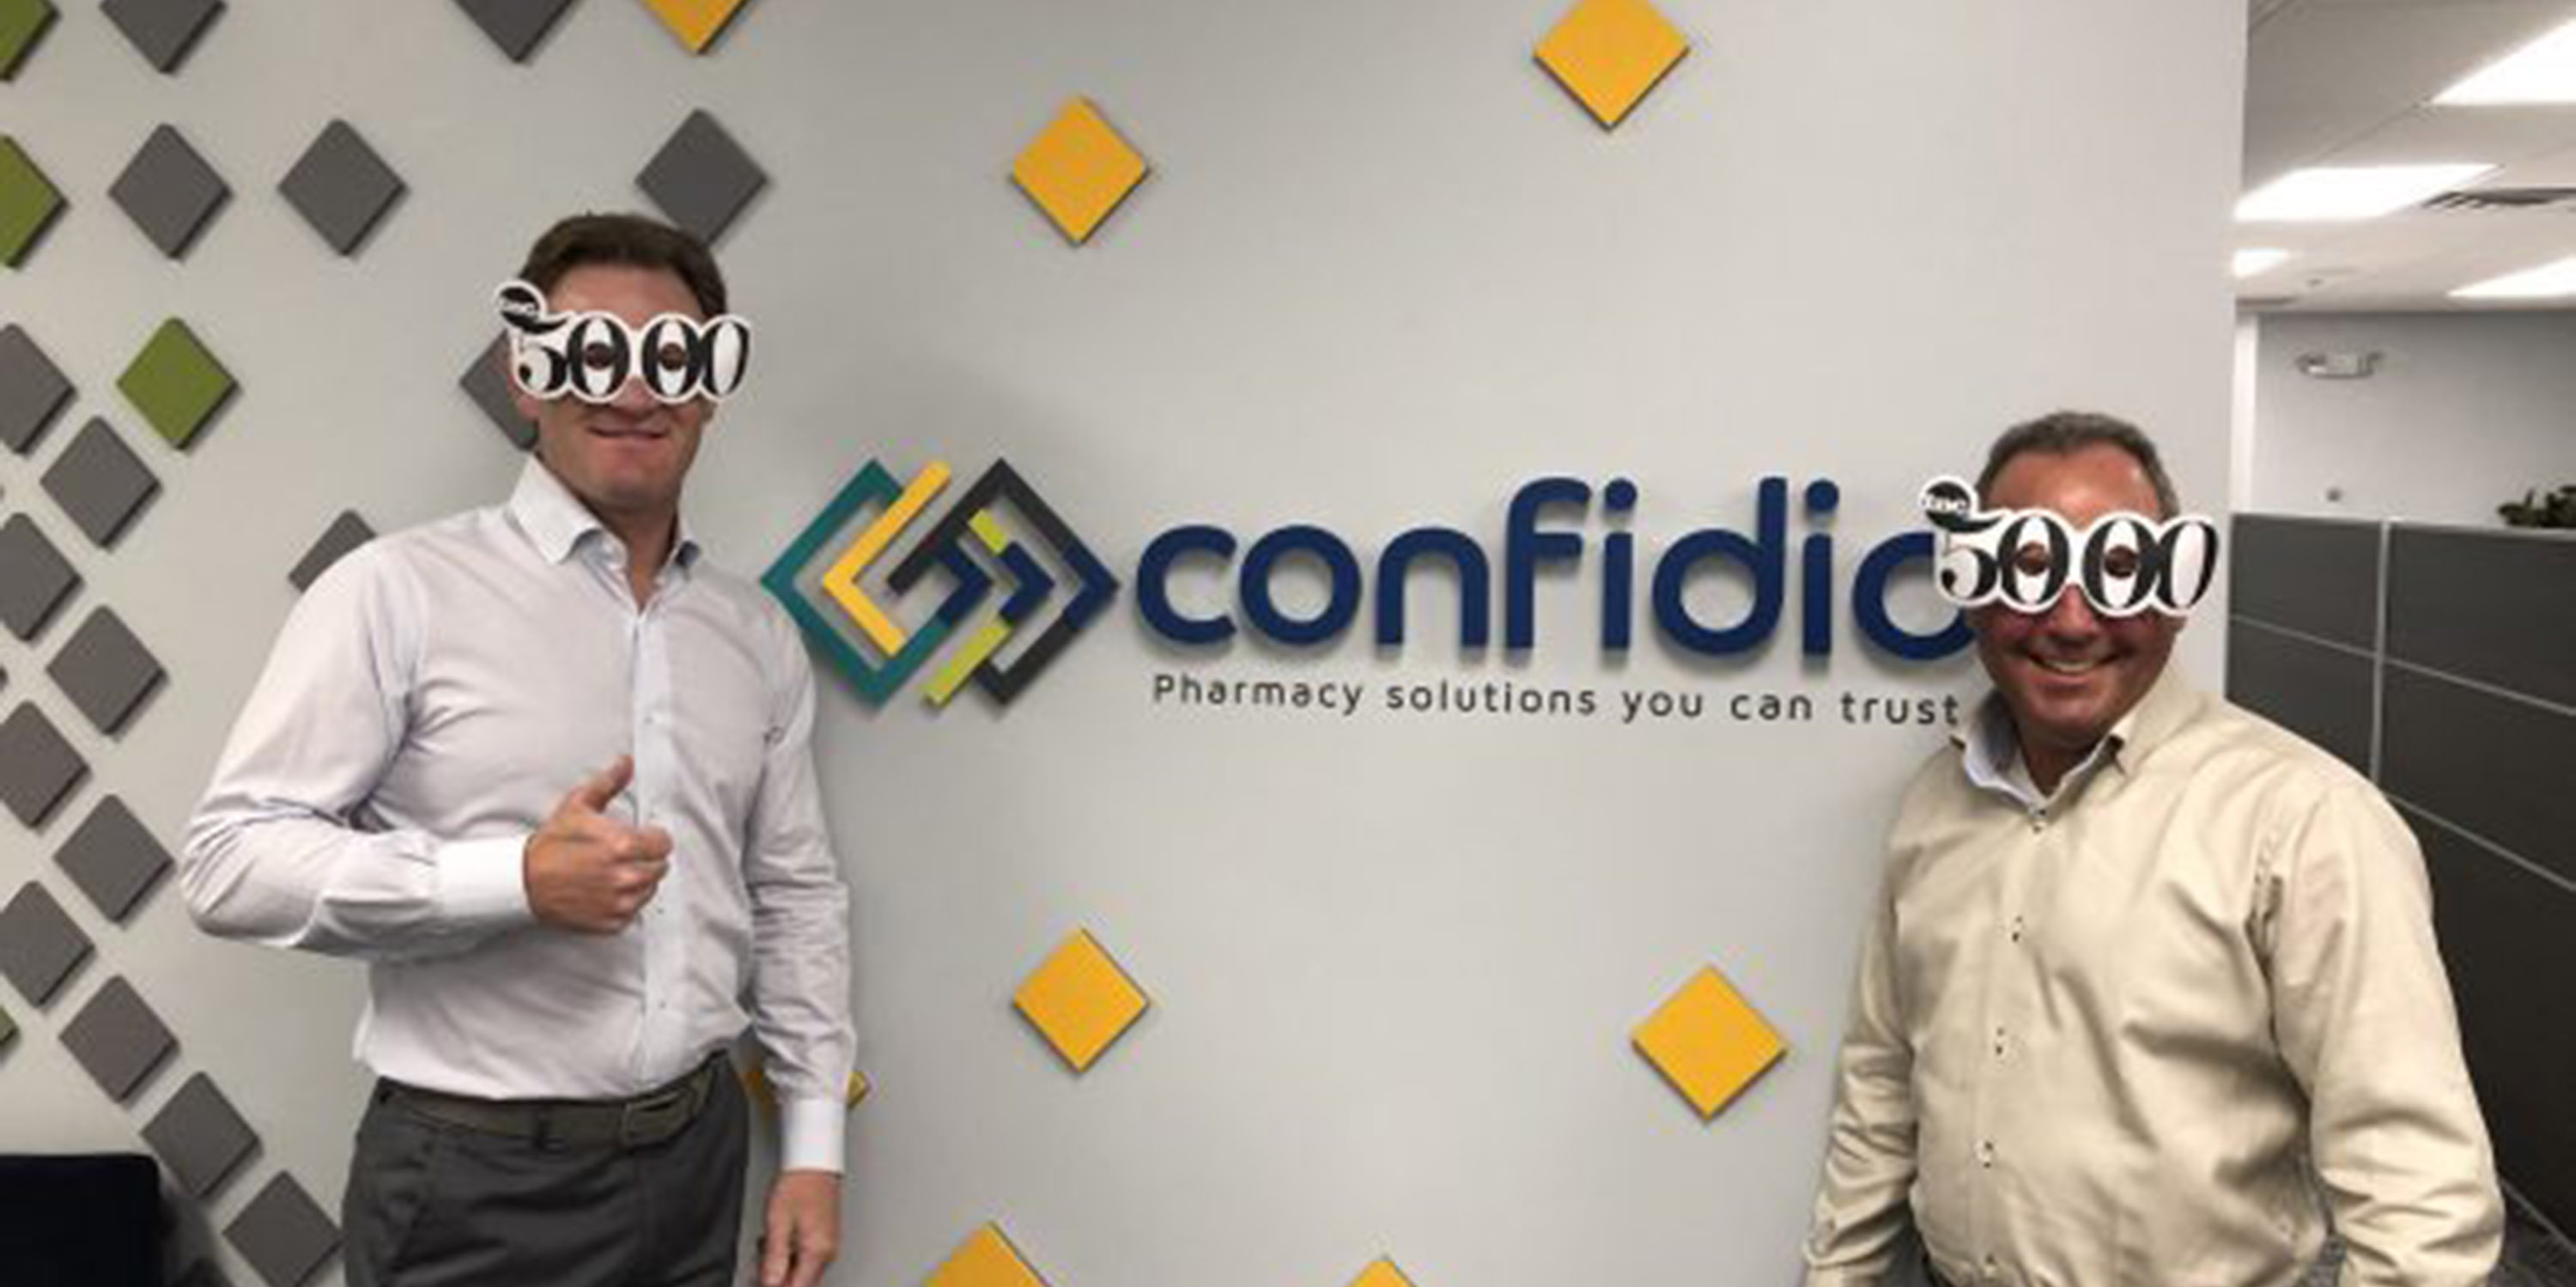 CONFIDIO Ranks No. 452 on the 2020 Inc. 5000 With Three-Year Revenue Growth of 1014.66%